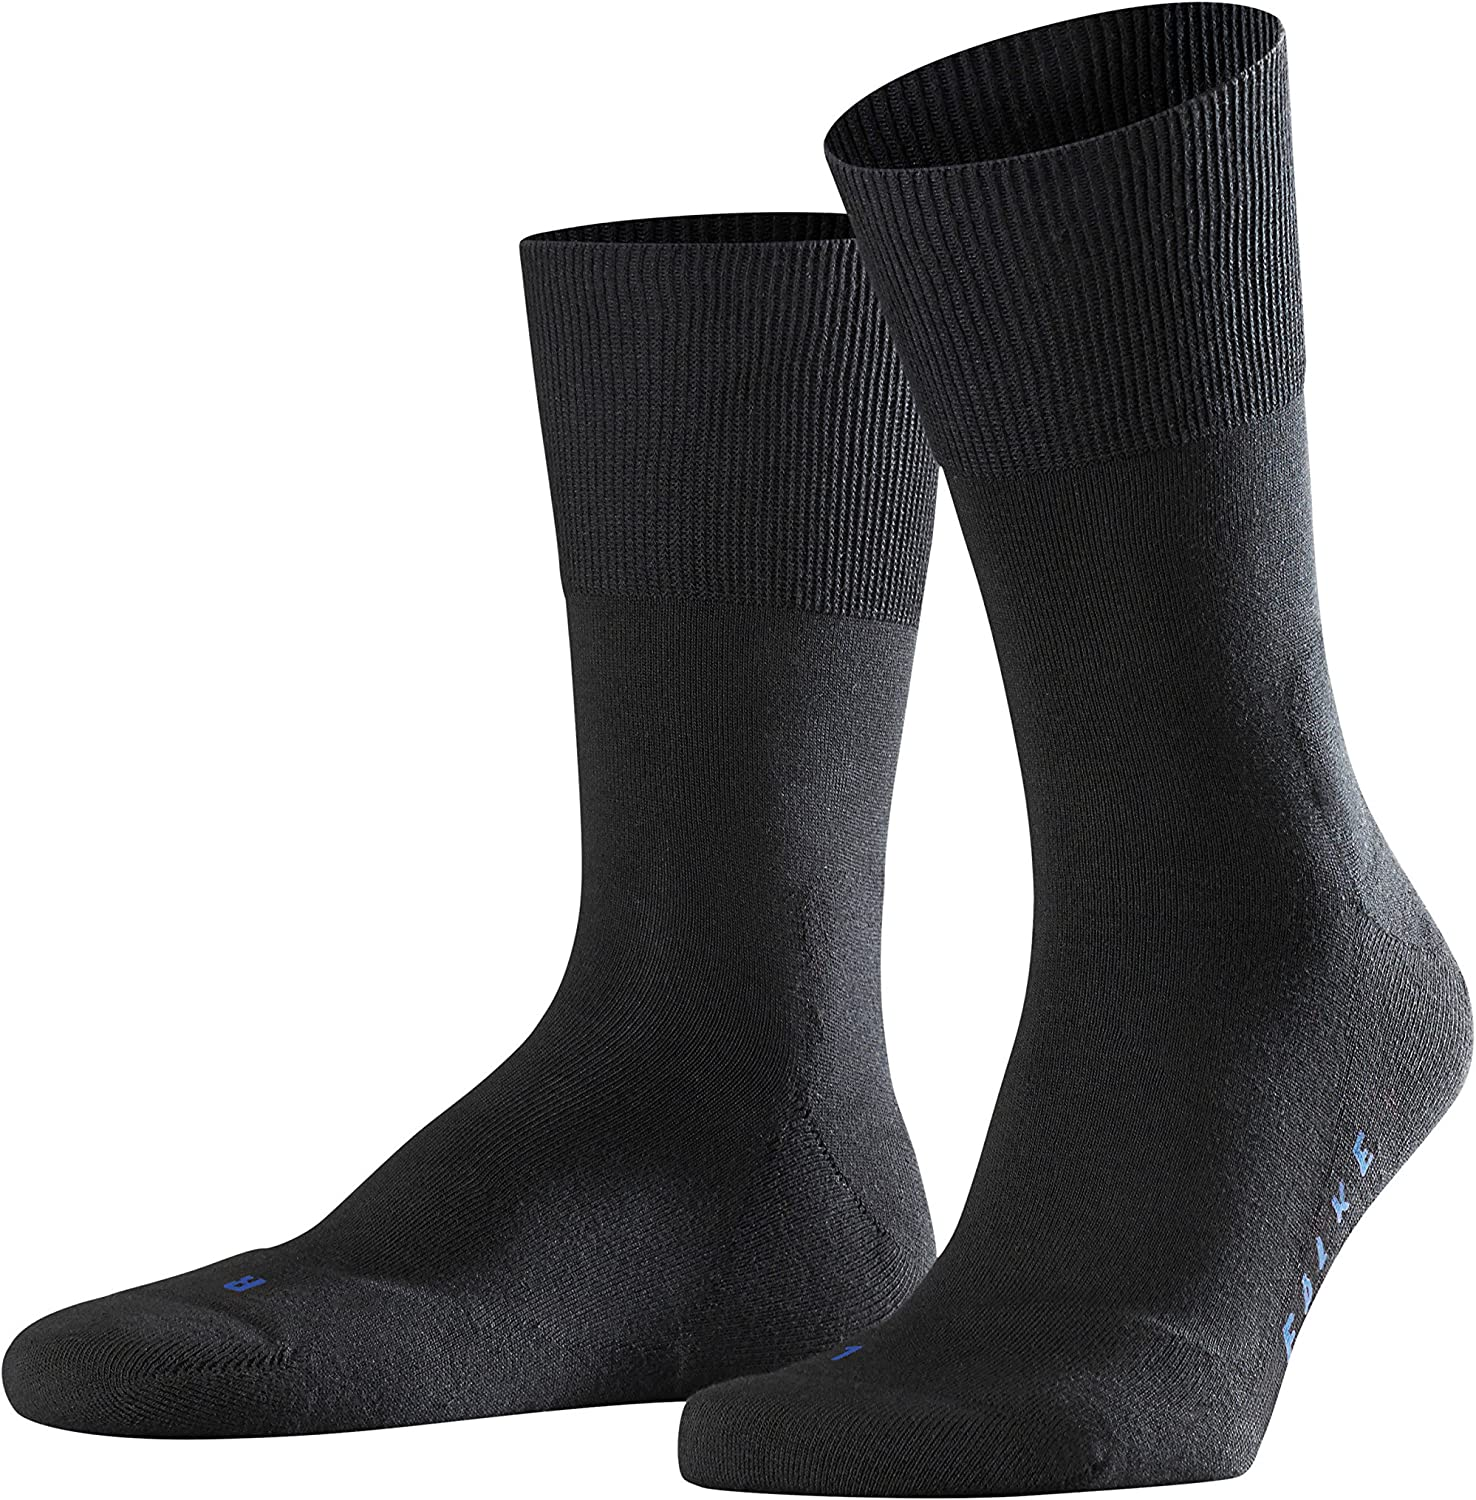 FALKE Unisex-Adult Run Socks Cotton Black Animer and price revision Genuine Free Shipping Colors 1 White Pa More